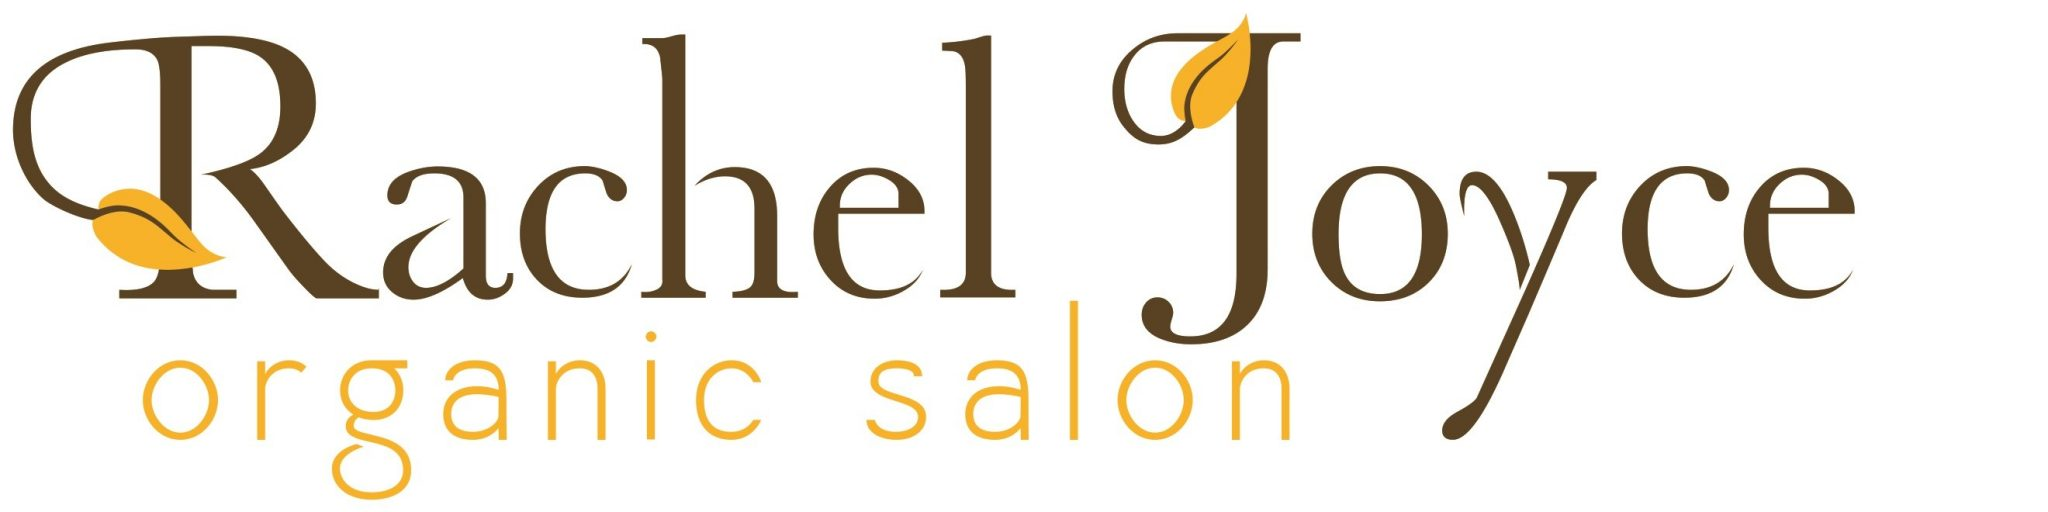 Rachel Joyce Organic Salon Logo FINAL